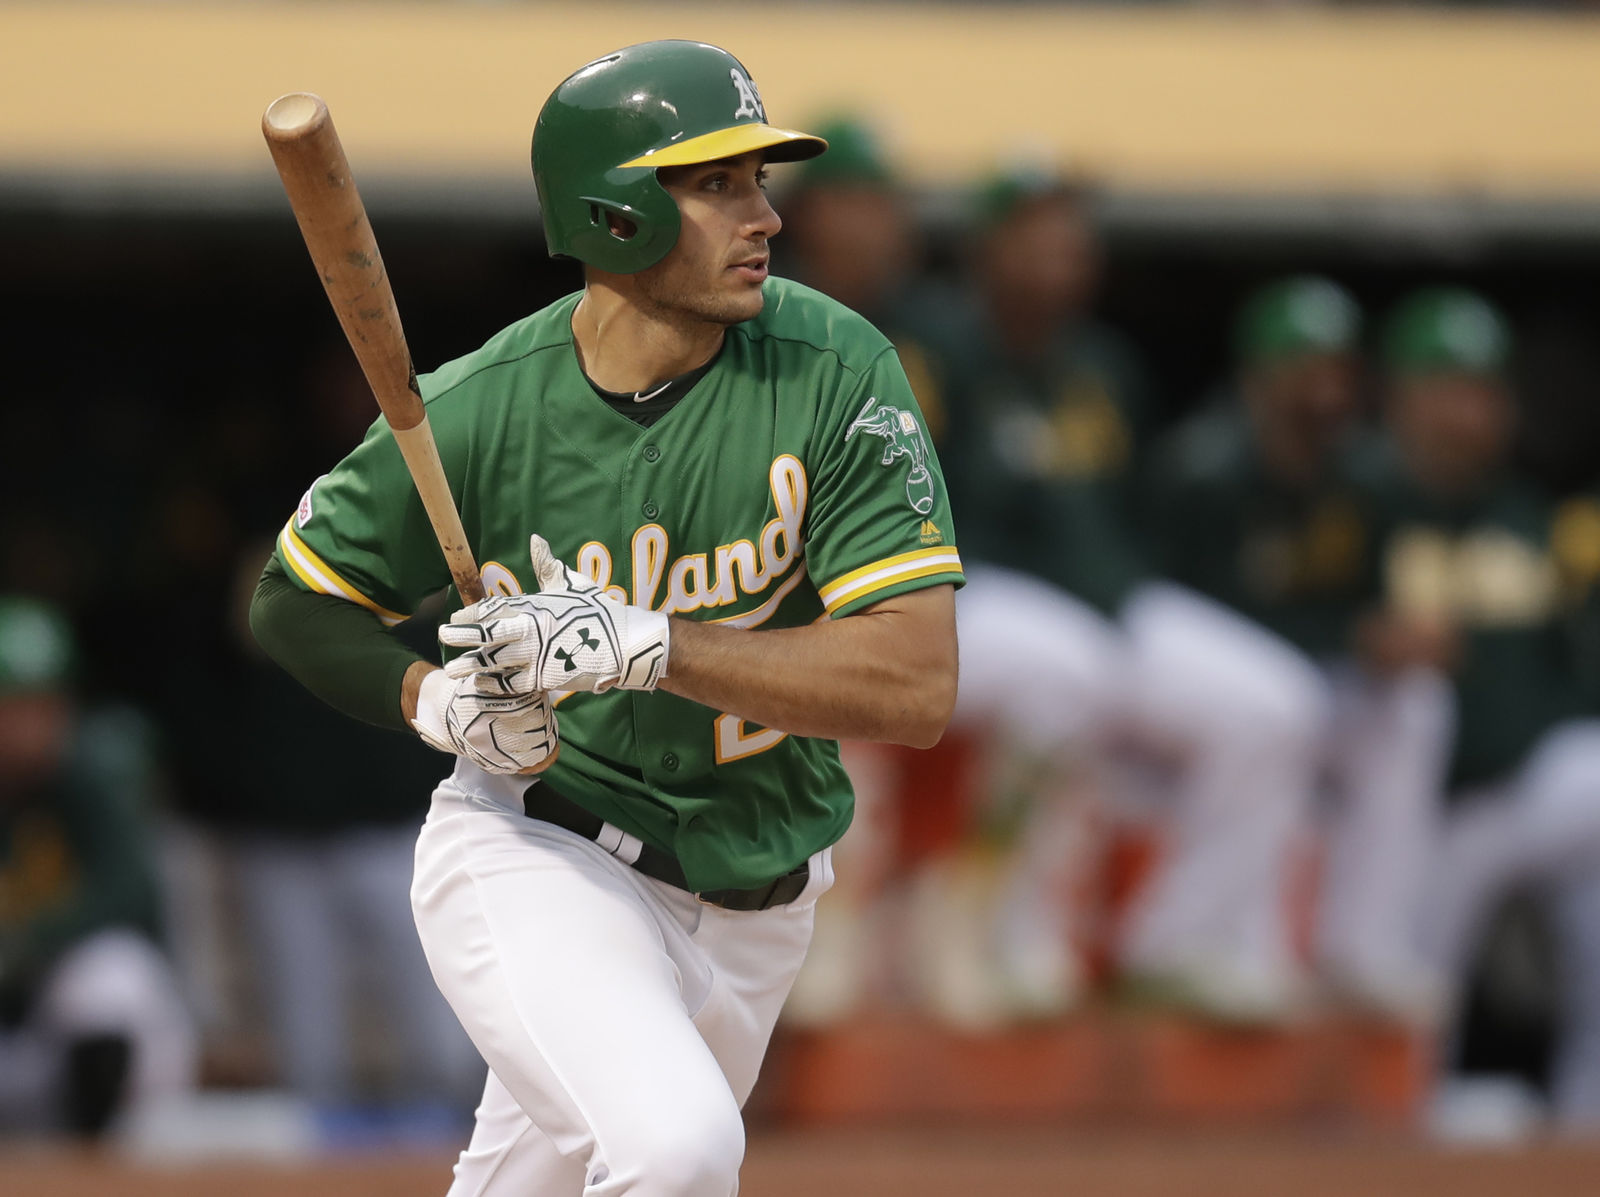 Oakland Athletics' Matt Olson follows through on an RBI-single off Seattle Mariners' Marco Gonzales in the third inning of a baseball game Friday, June 14, 2019, in Oakland, Calif. (AP Photo/Ben Margot)